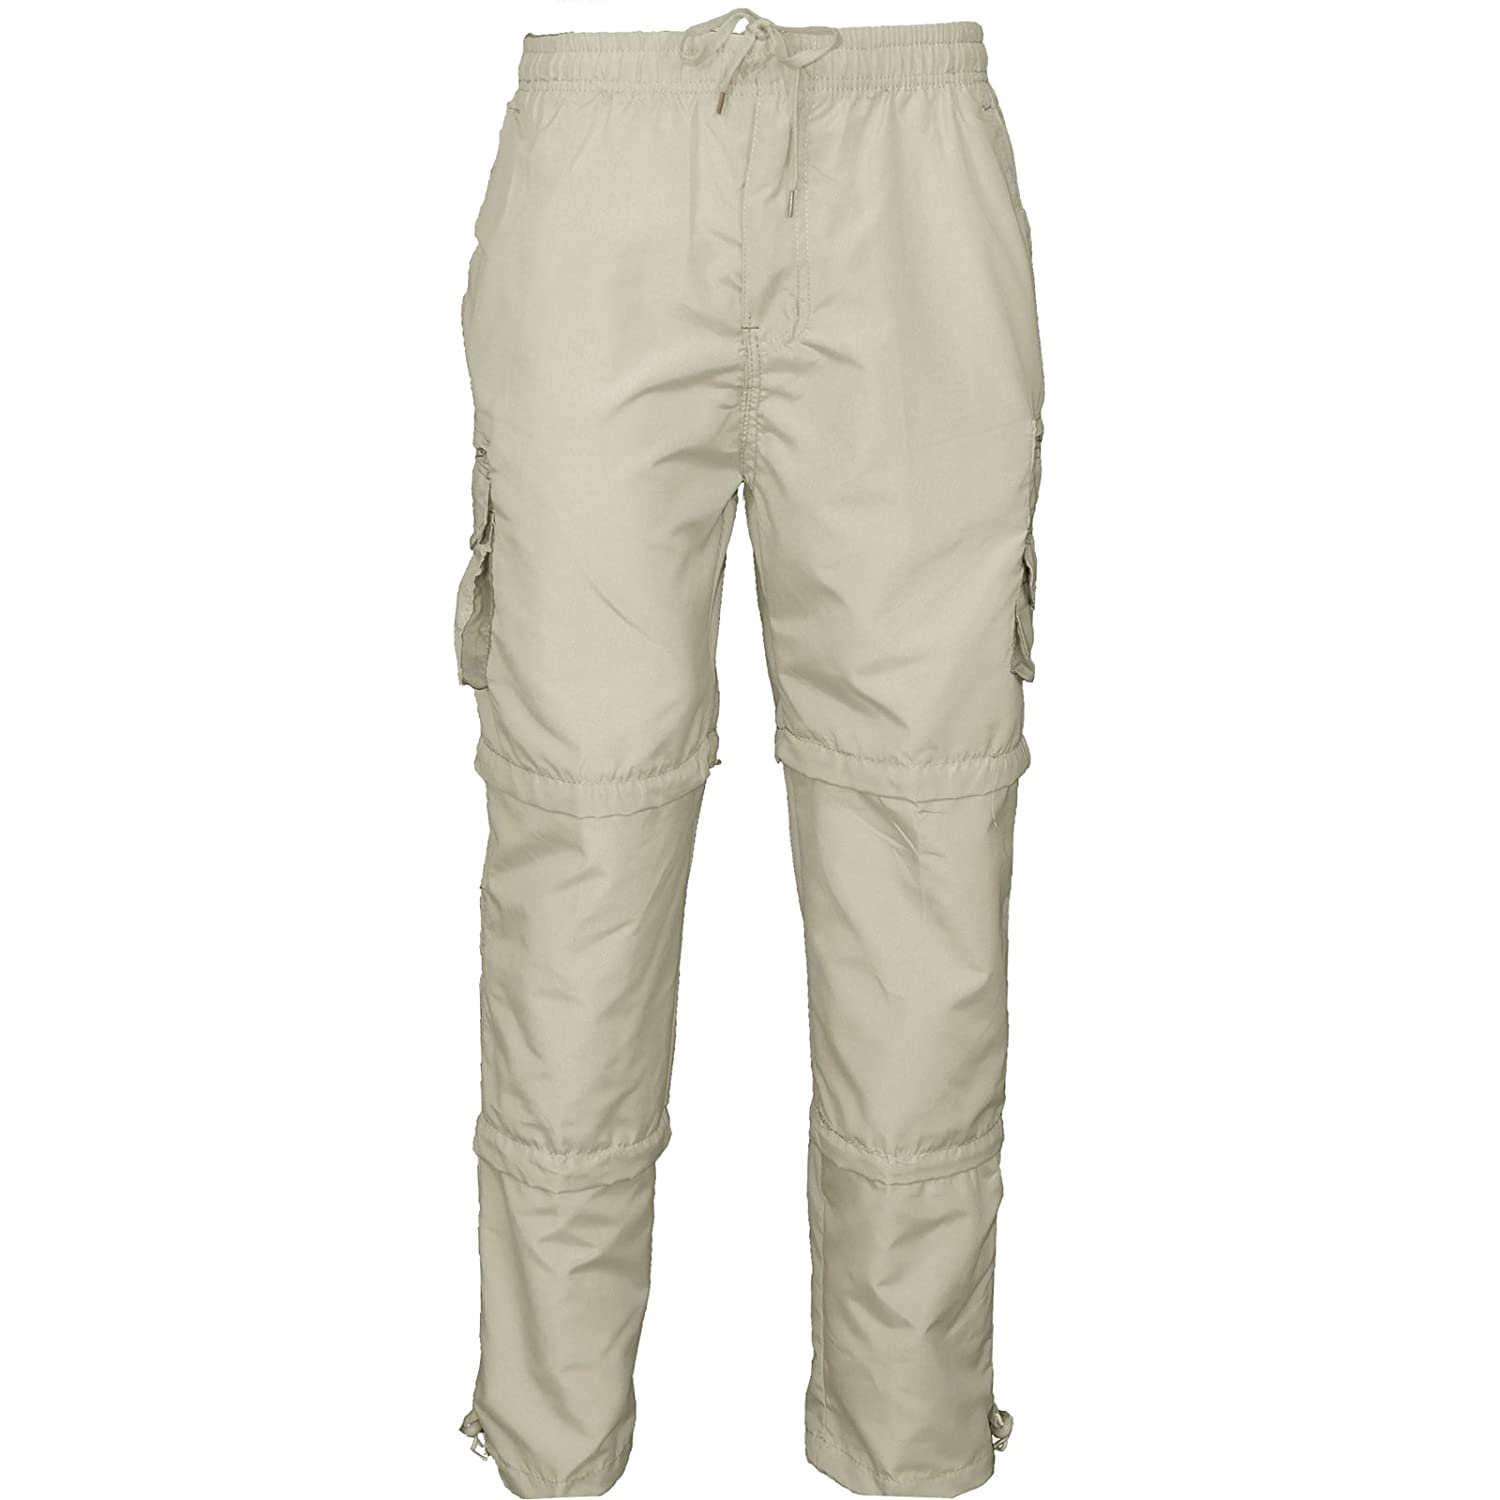 MENS 3 IN 1 TROUSERS SHORTS ZIP OFF COMBAT CARGO SUMMER WORK JOGGING PANTS  M-3XL  Amazon.co.uk  Clothing c64ebf006